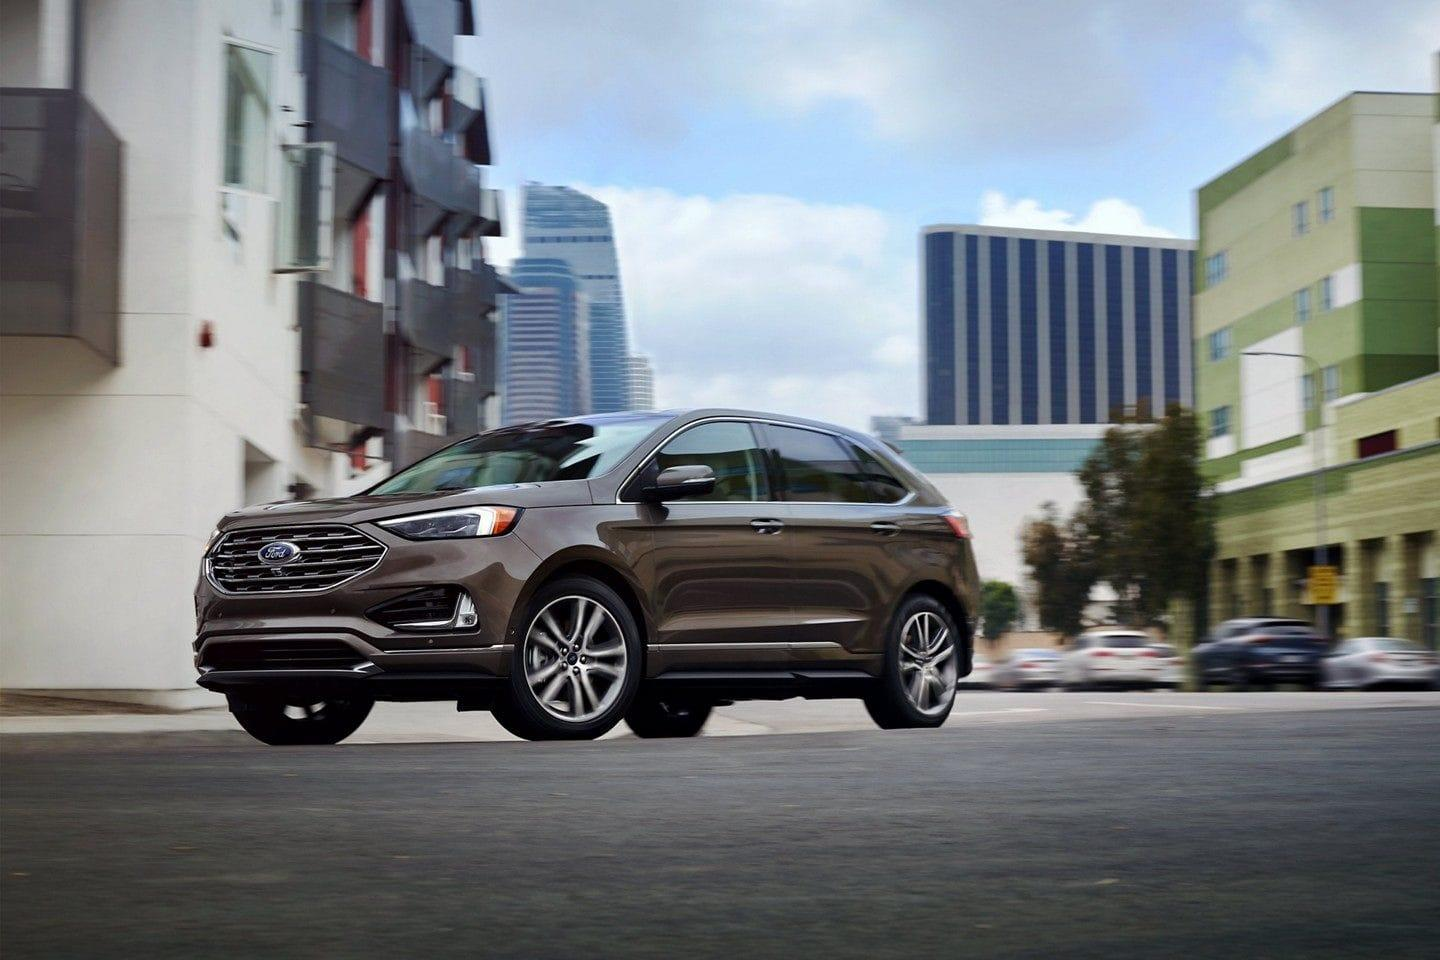 2020 Ford Edge in Edmonton at Waterloo Ford